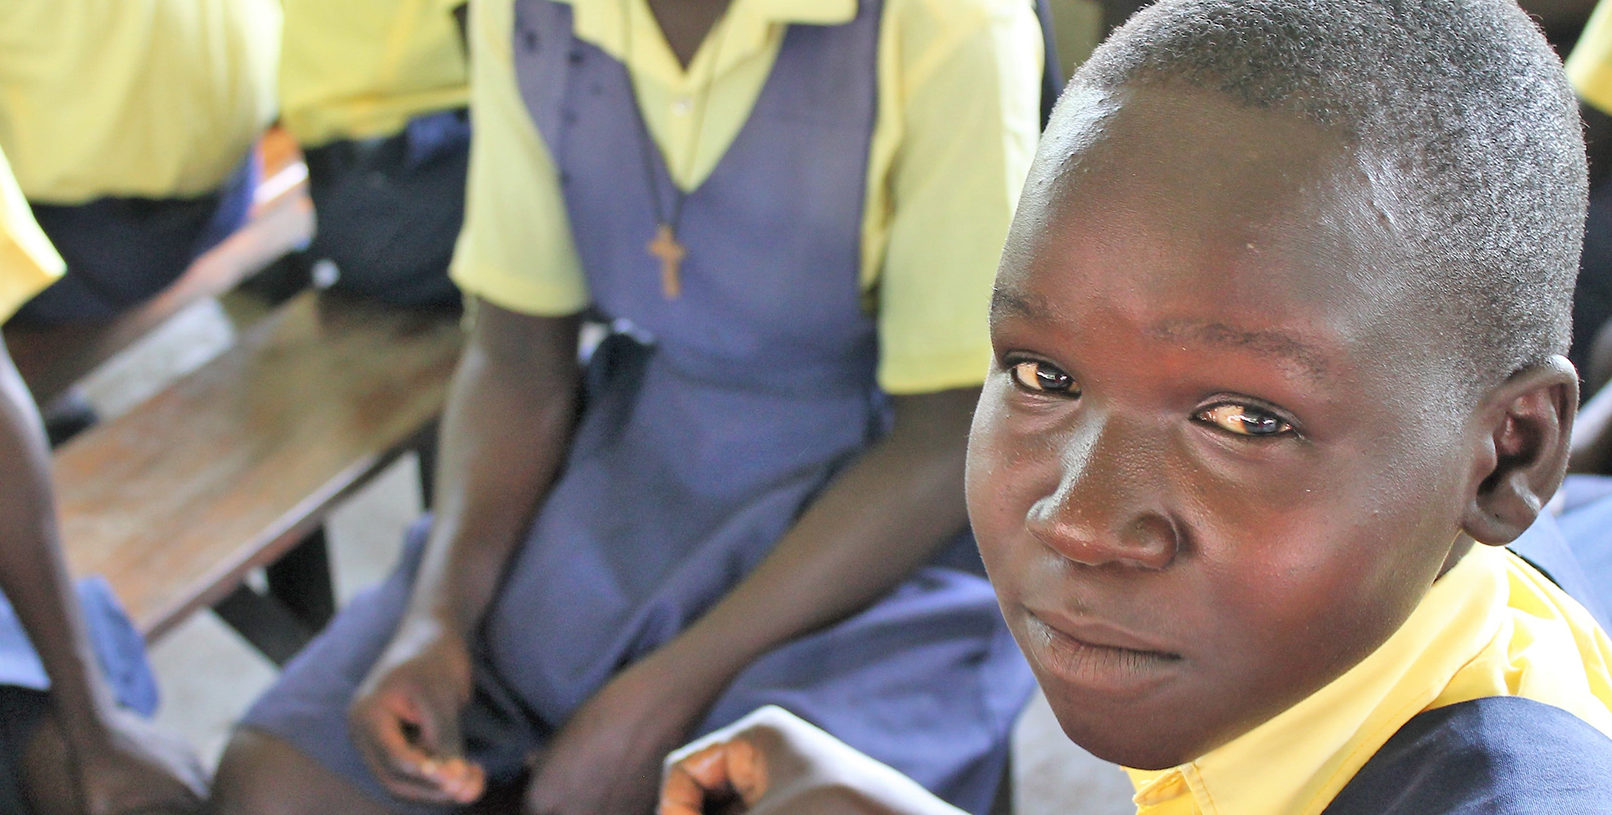 Students in S. Sudan find hope through education